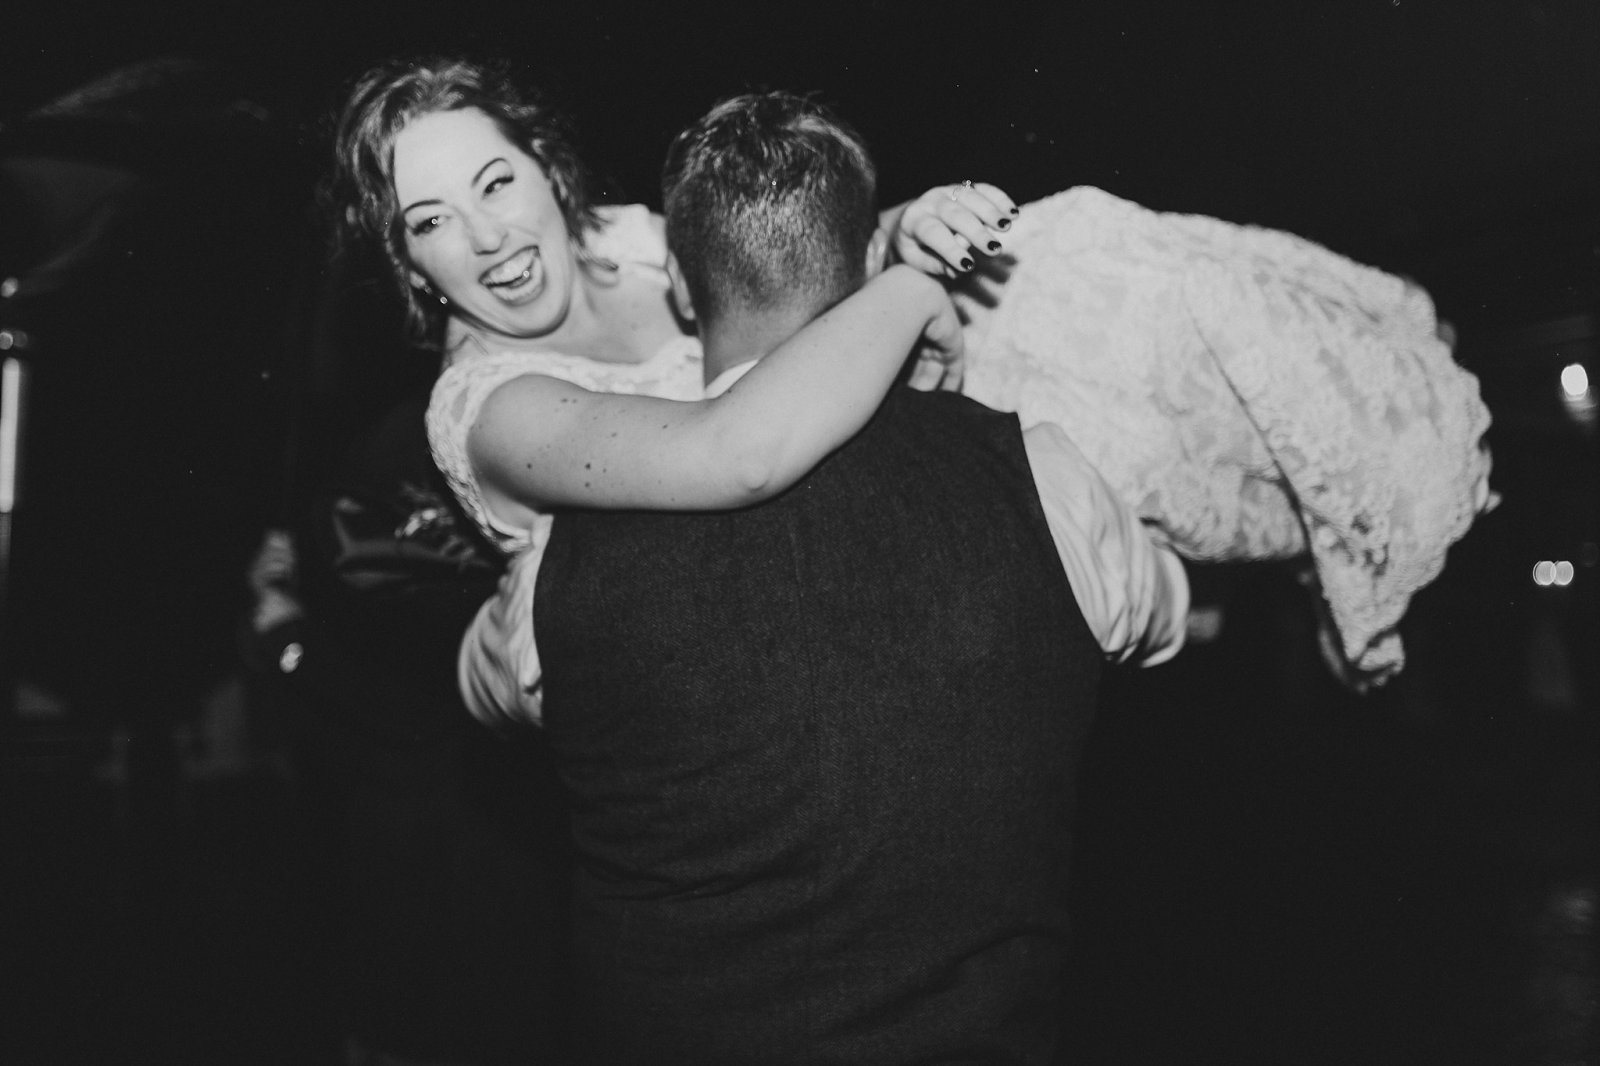 Groom Carrying Bride in Black and White Wedding Photography